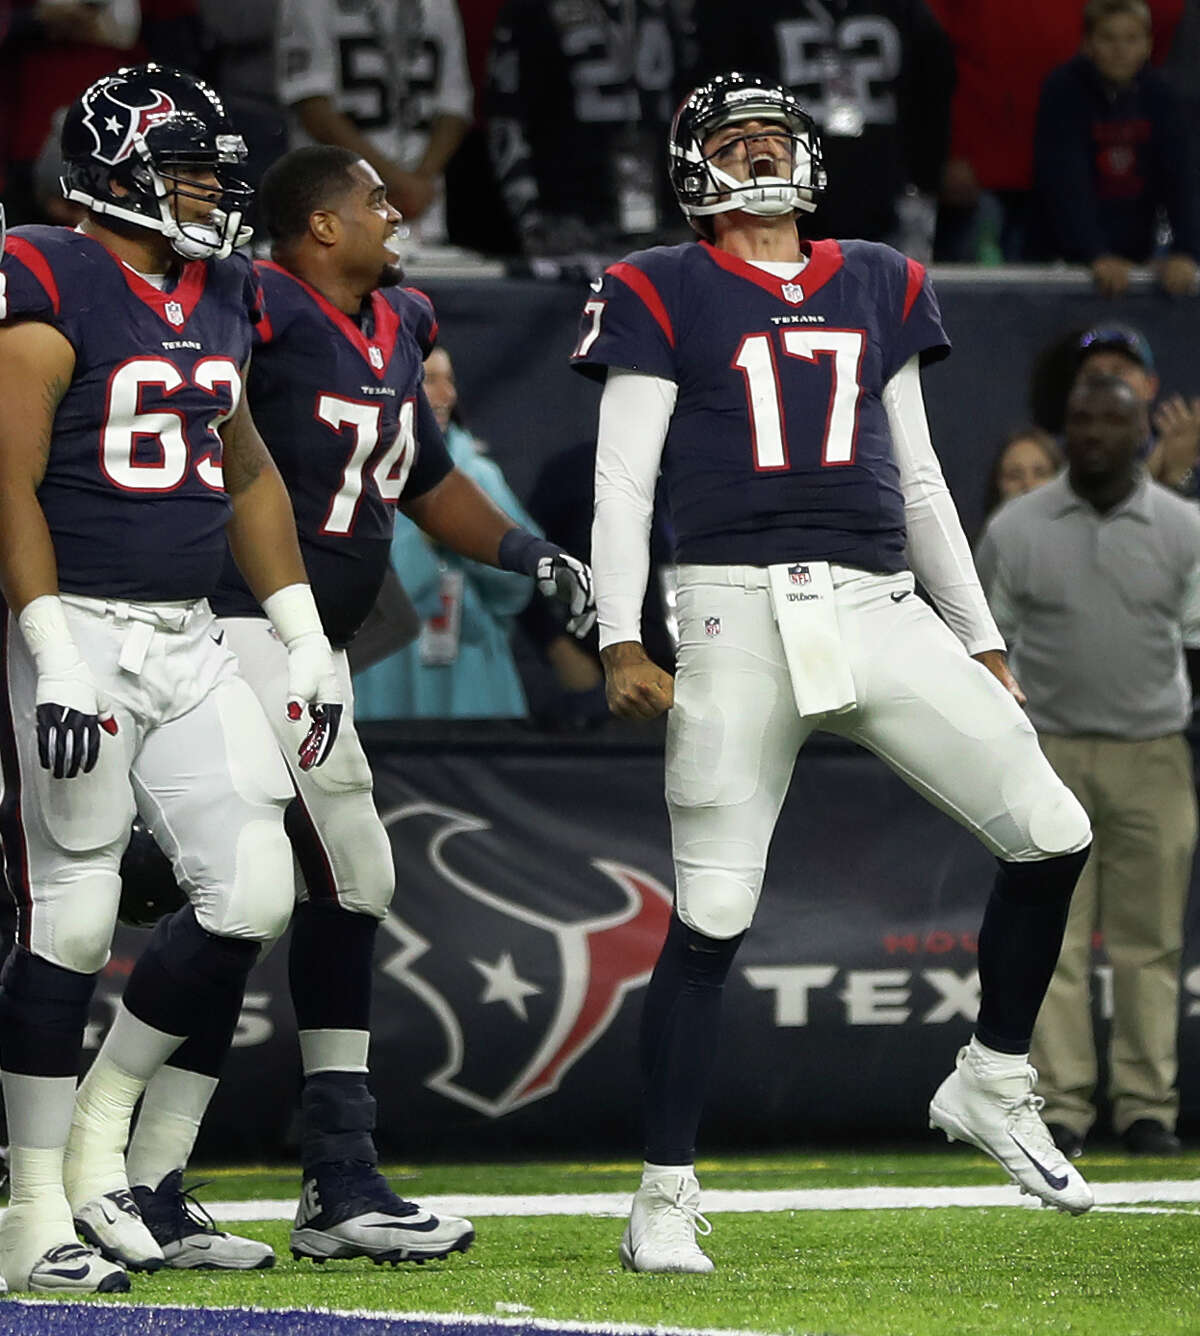 JOHN McCLAIN'S GRADES FOR PLAYOFF WIN OVER THE RAIDERS Quarterback Brock Osweiler returned to the lineup and threw one touchdown pass and ran for another for the second game in a row. He didn't turn it over for the second consecutive game and finished with a 90.1 rating. Grade: B